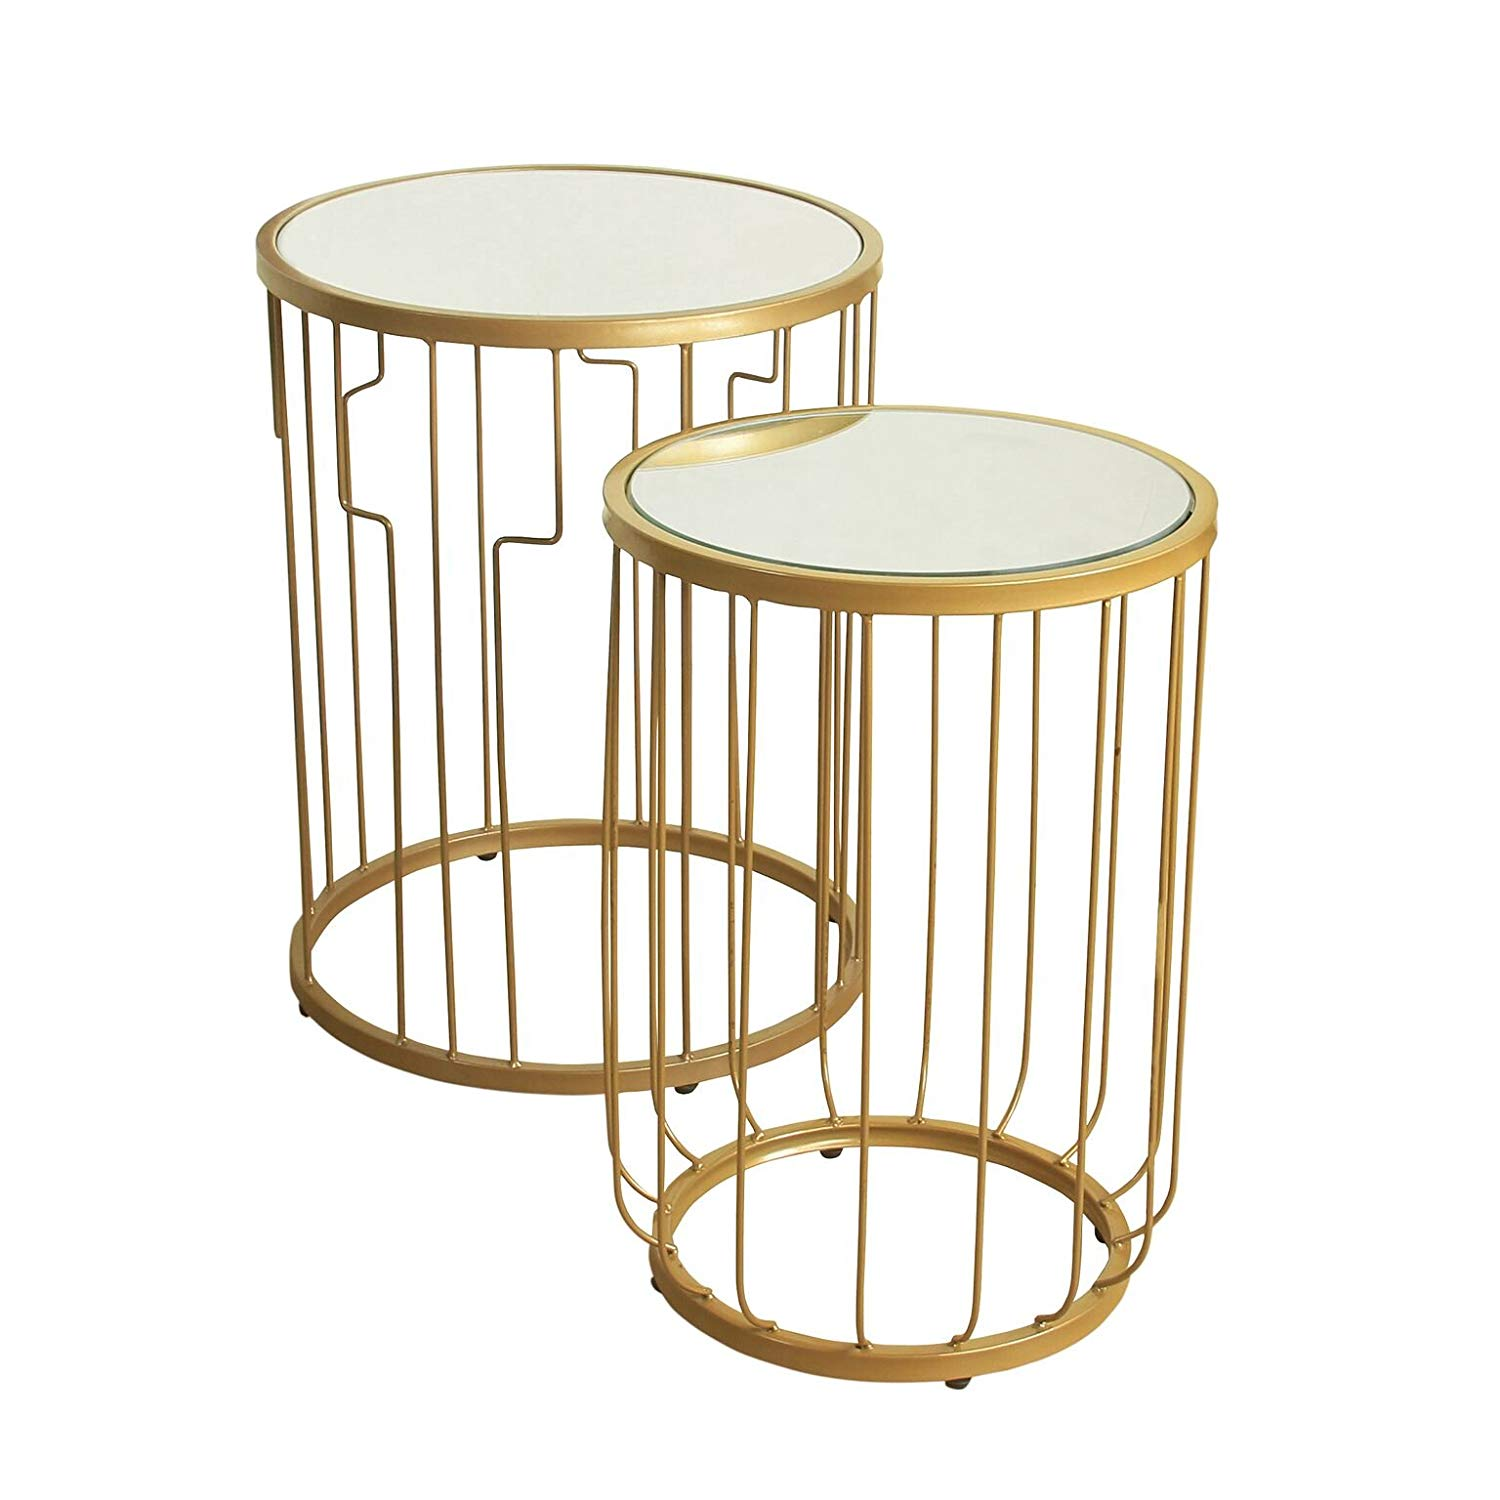 homepop metal accent nesting tables with glass table top set gold kitchen dining triangle corner round tray portable grill yellow lamp base contemporary end pedestal wood gray